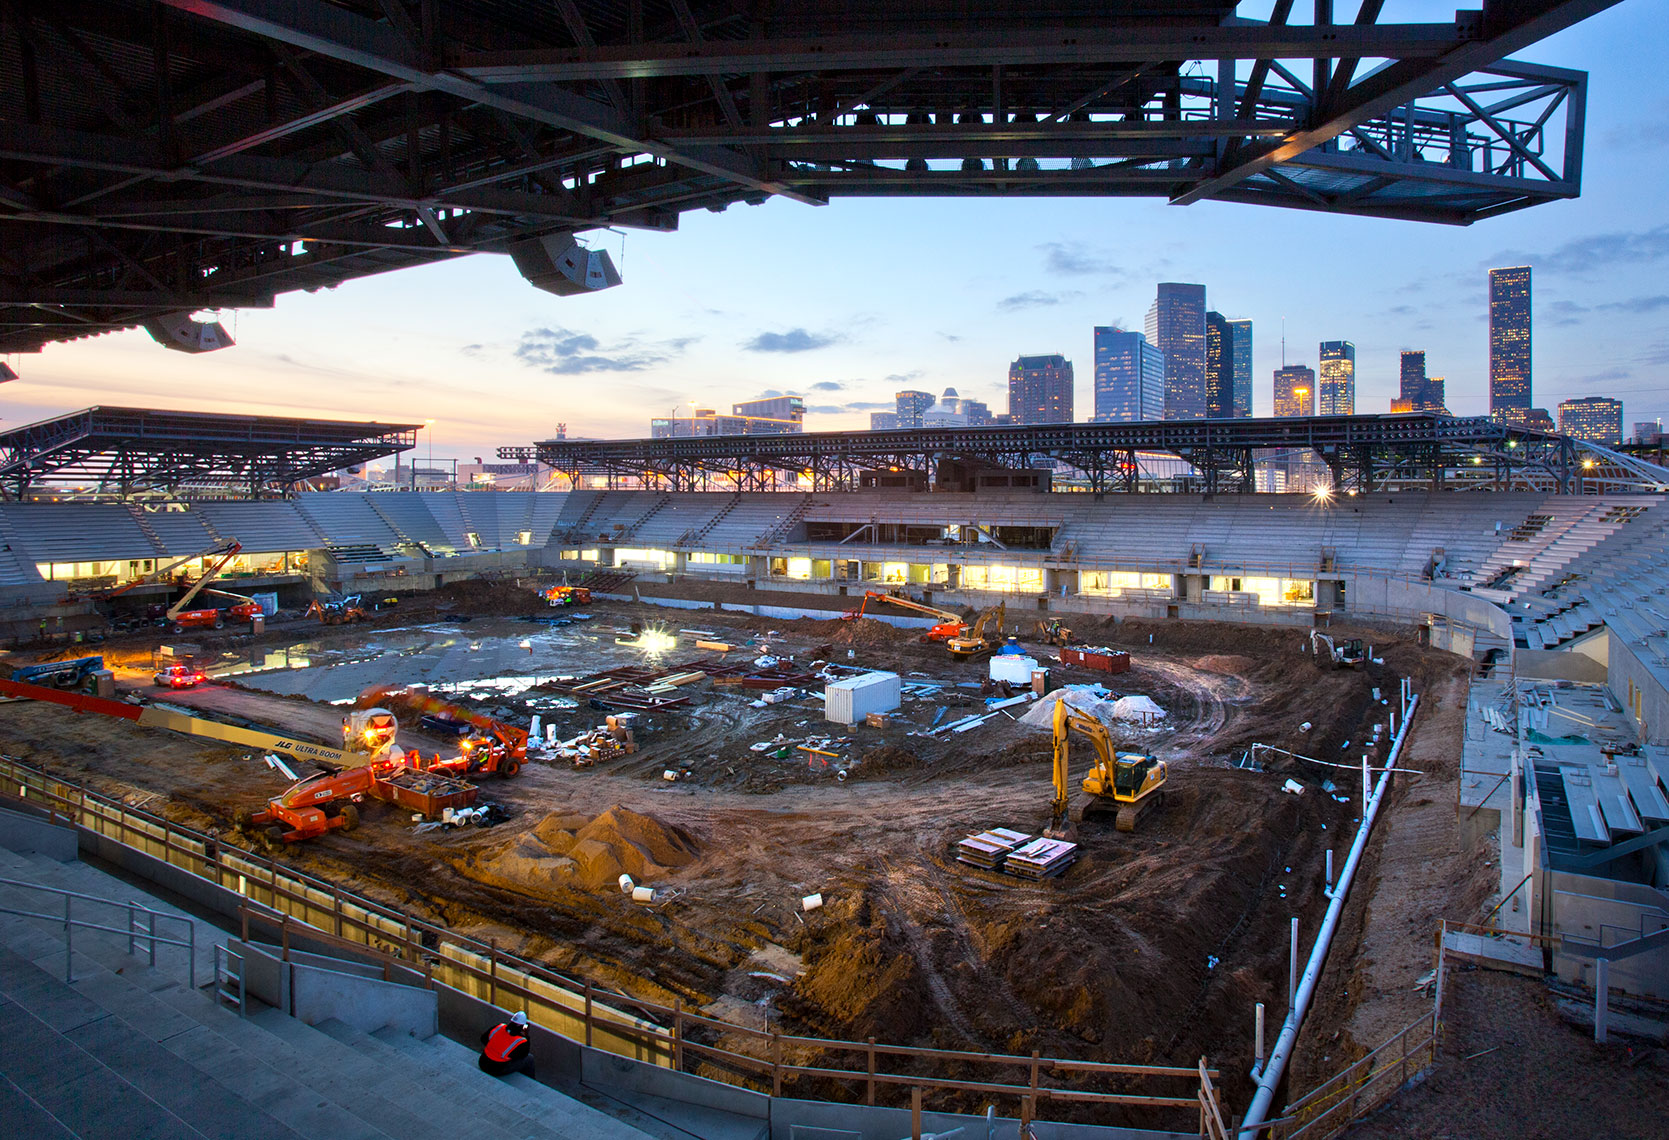 BBVA Stadium under construction in Houston Texas by Commercial photographer Shannon O